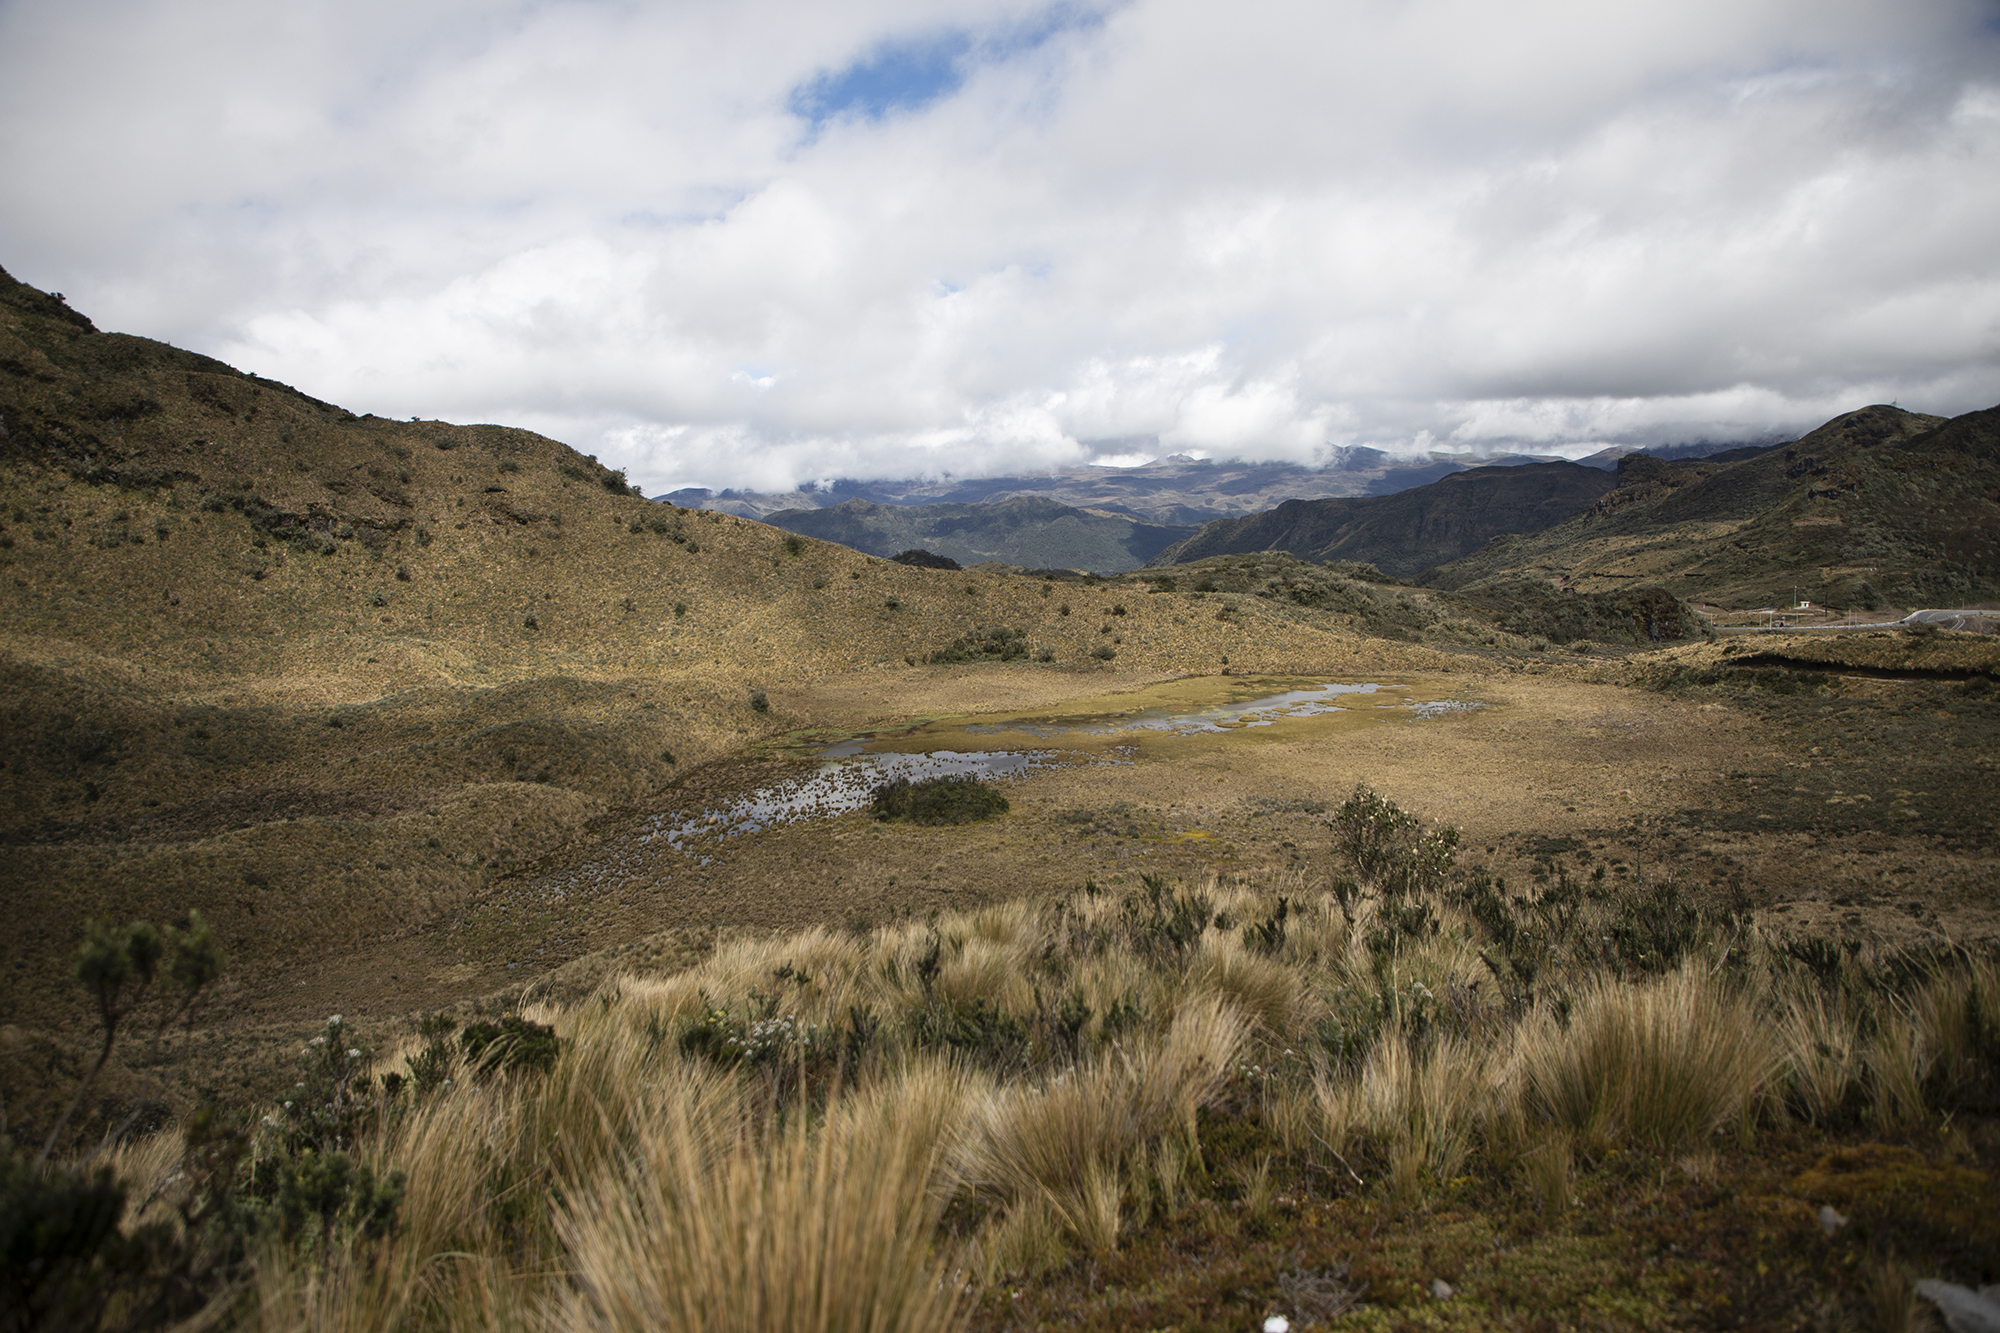 sprawling view of a wetland in the Cayambe Coca Ecological Reserve